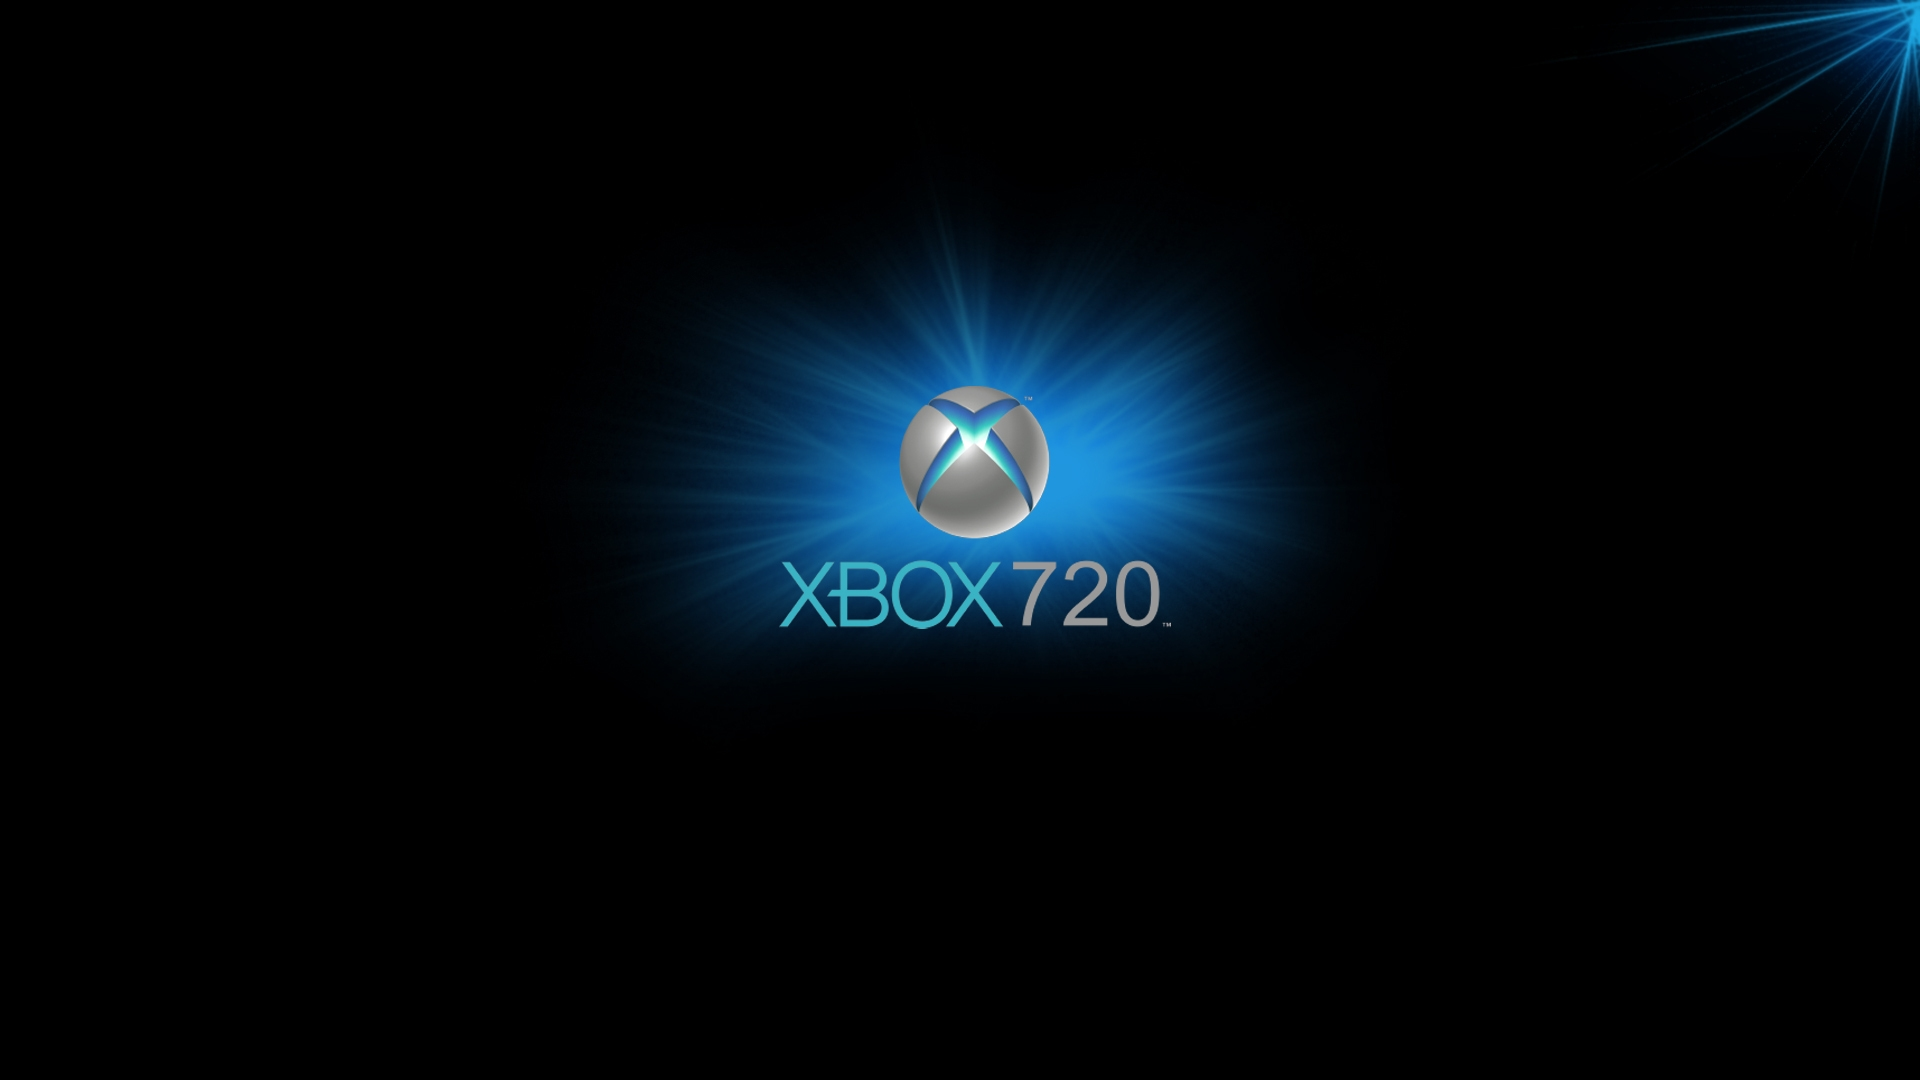 download wallpaper 1920x1080 xbox game console blue